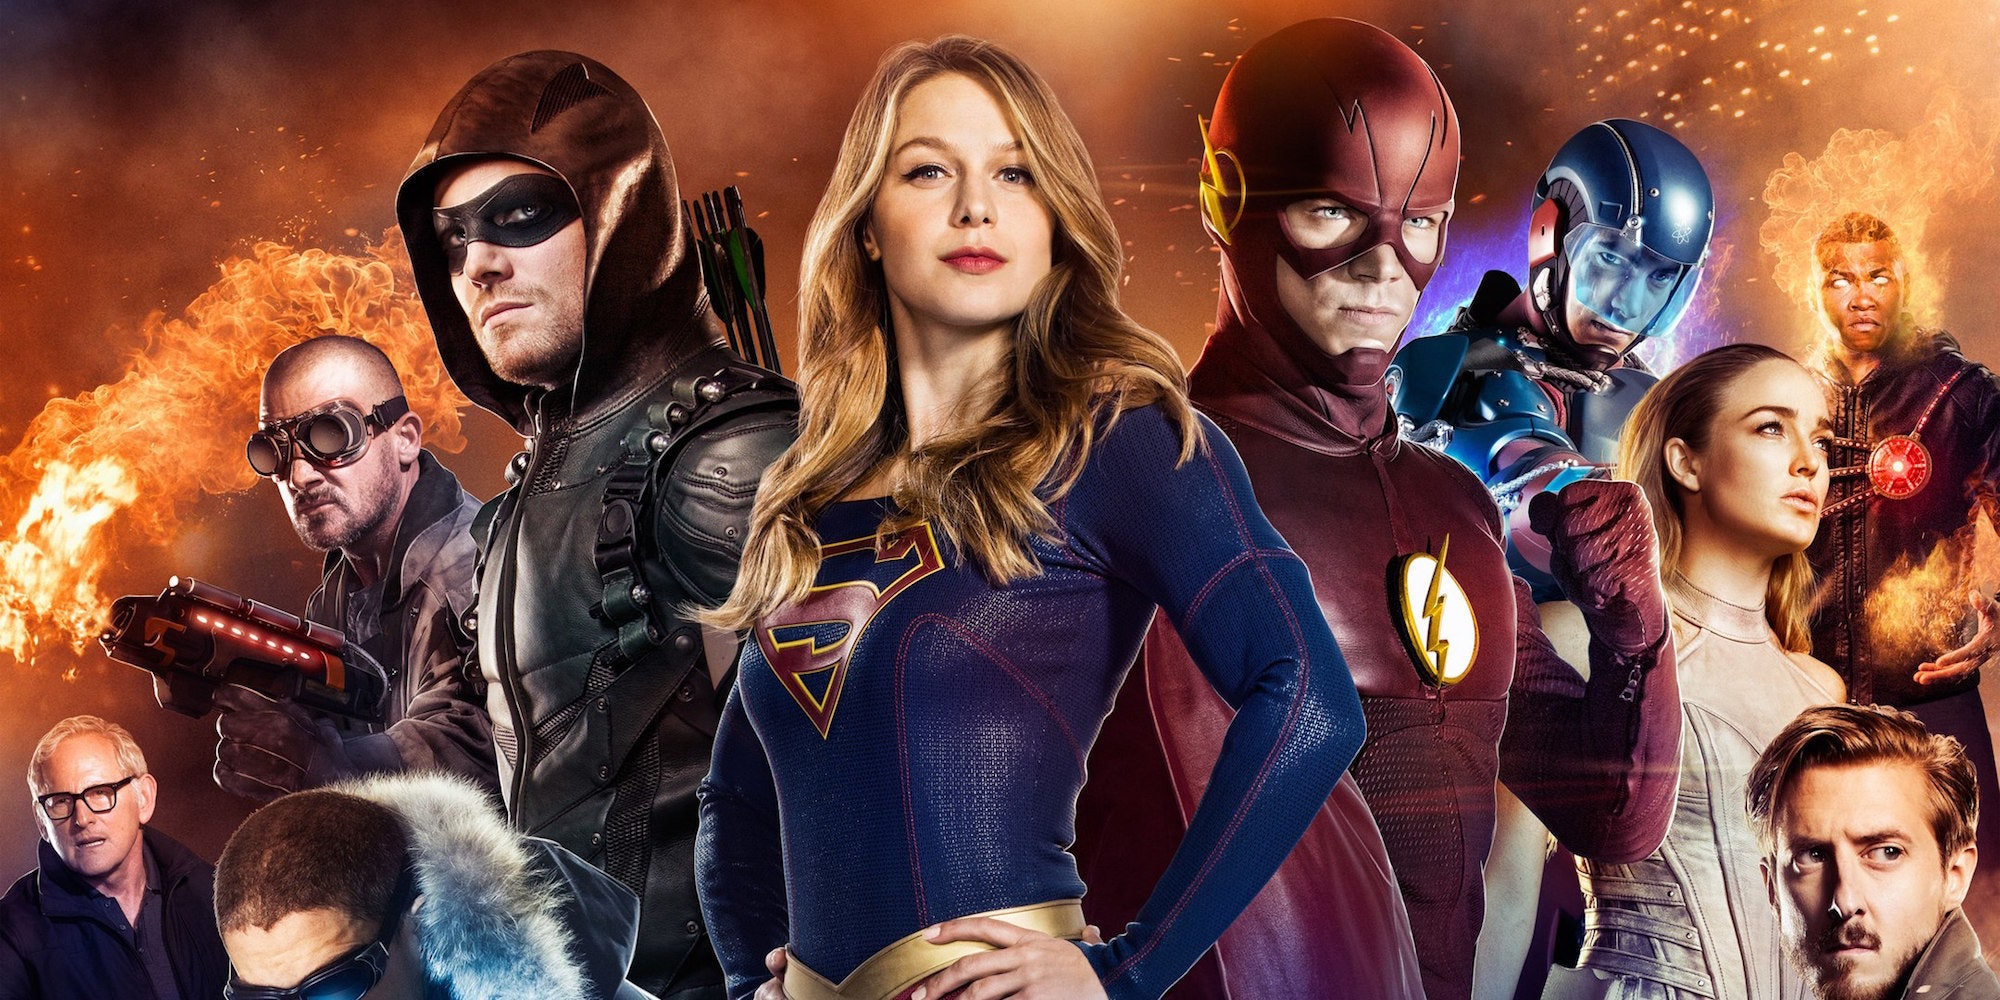 Supergirl is moving to the CW, but staying in her own reality. It seems she will not join the collective Arrowverse, but will visit from time to time.